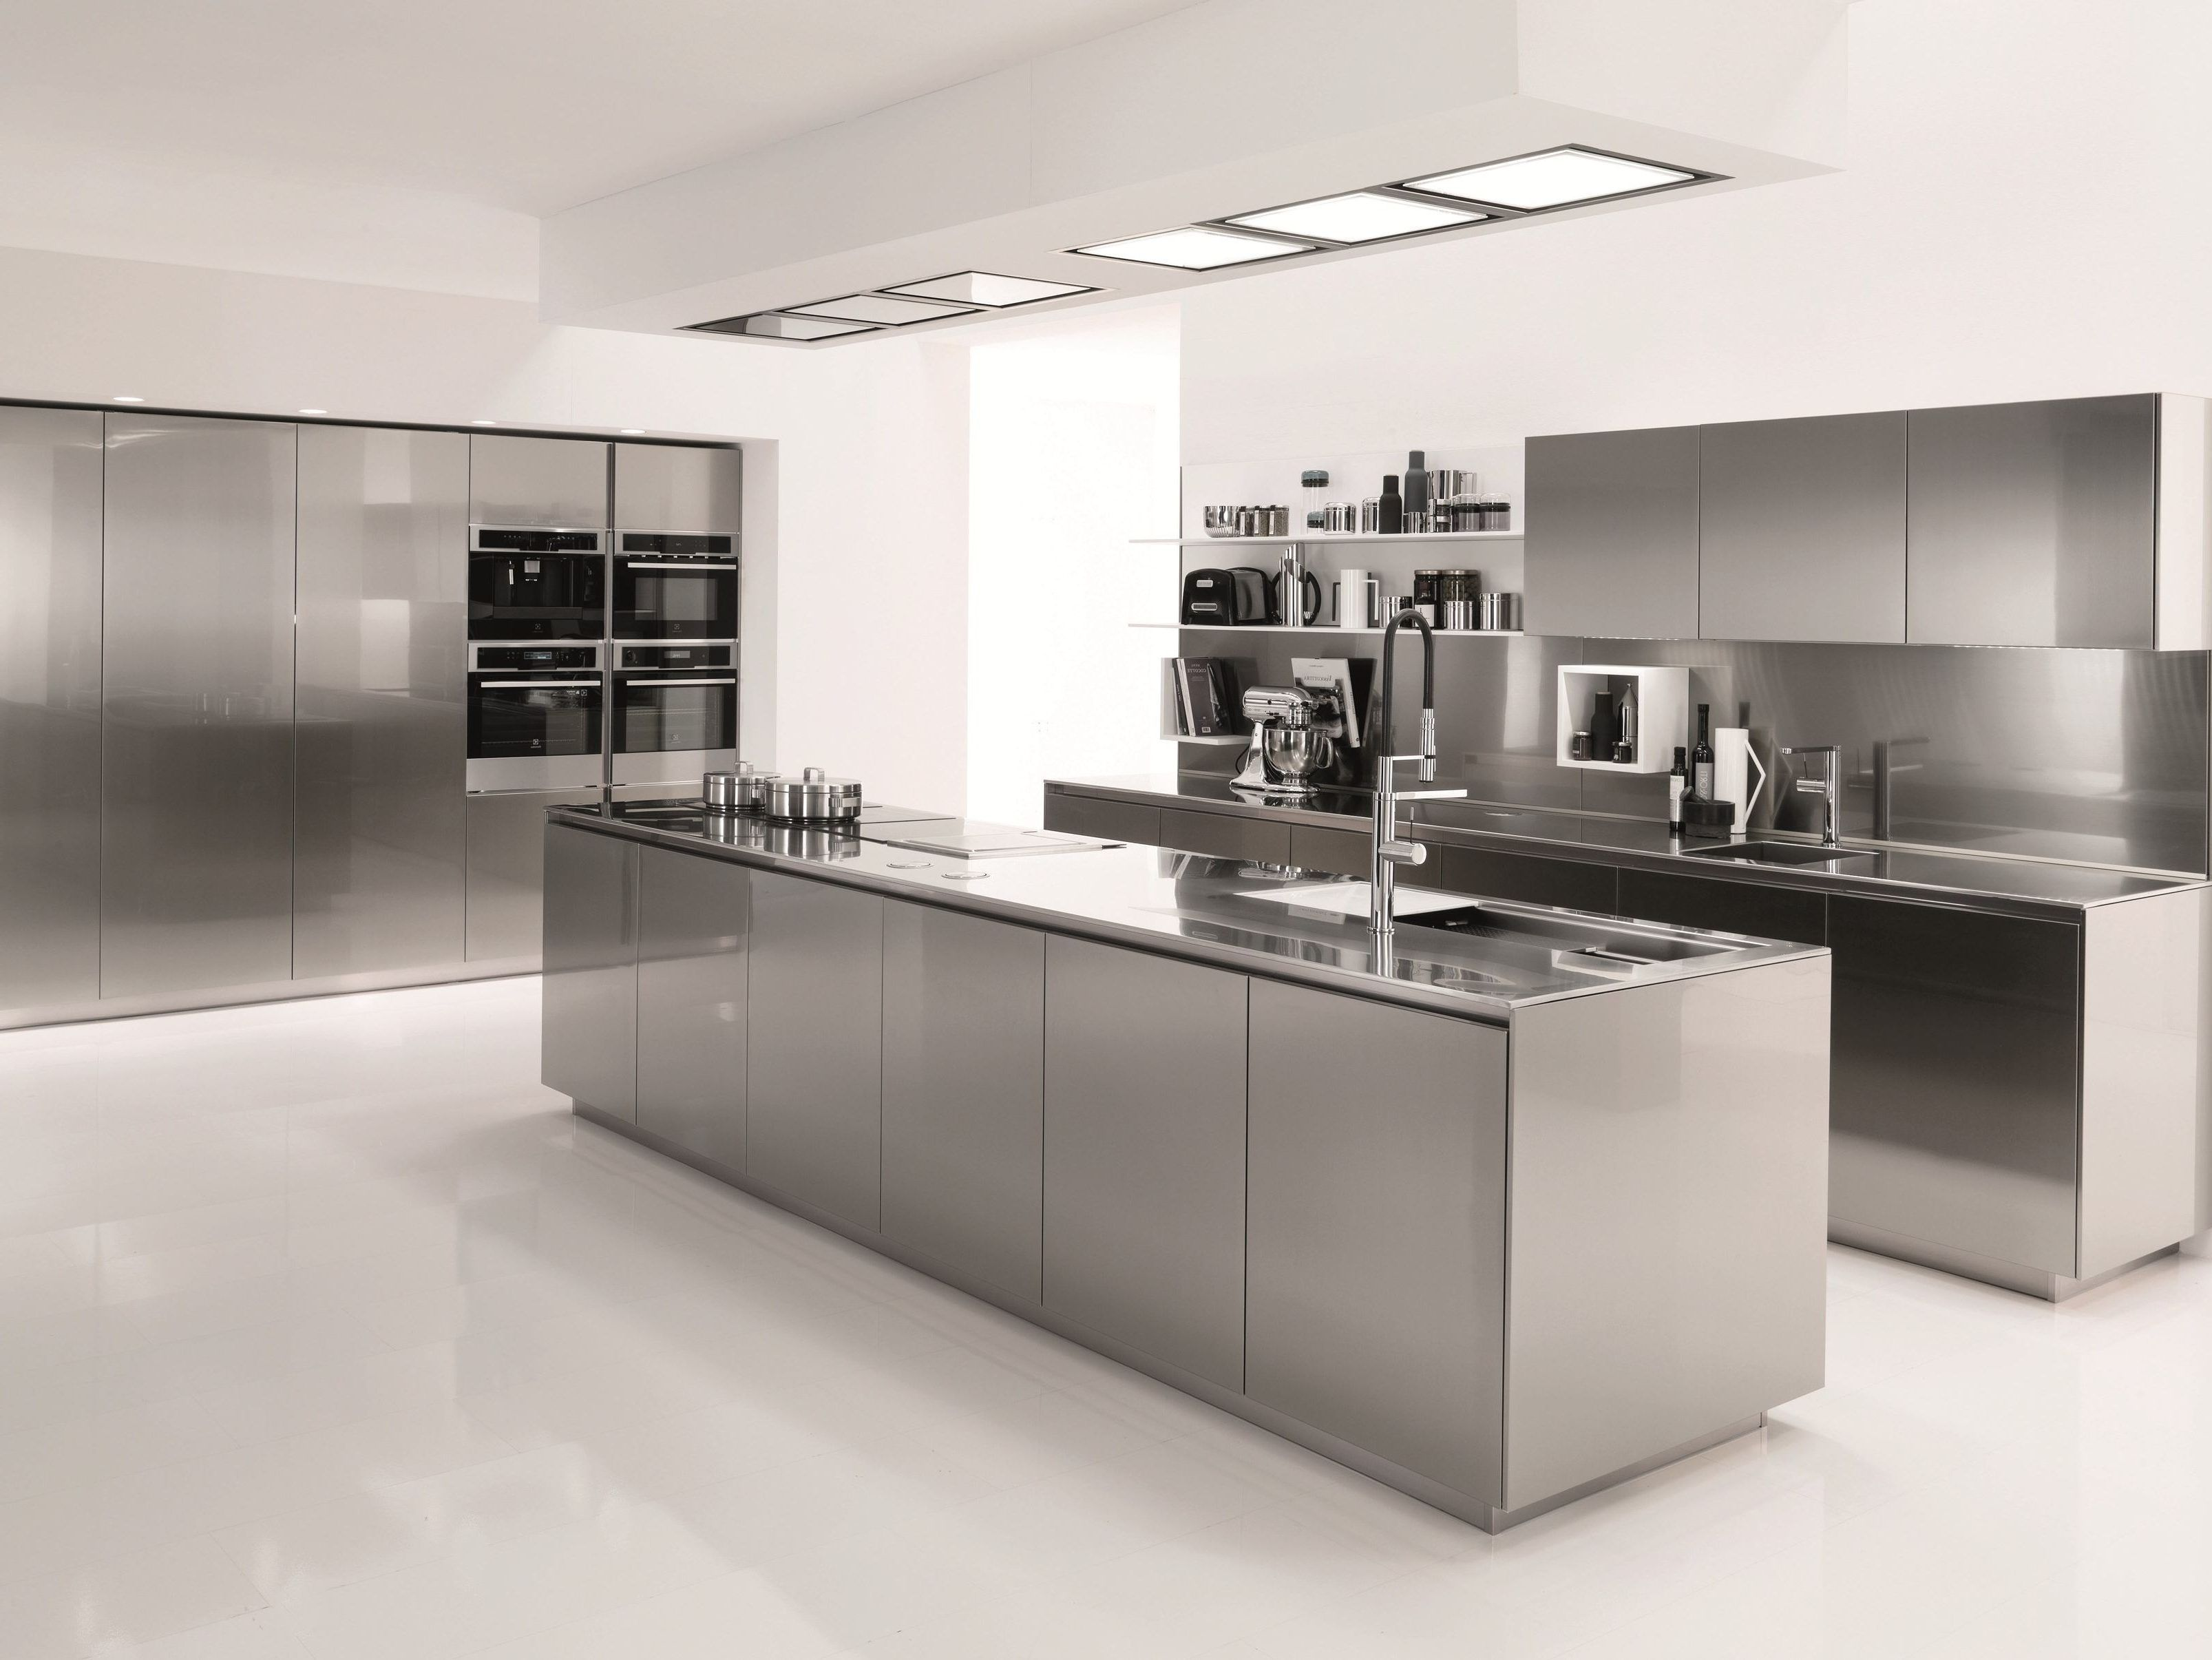 Stainless Steel Kitchen Ikea Built In Dining in